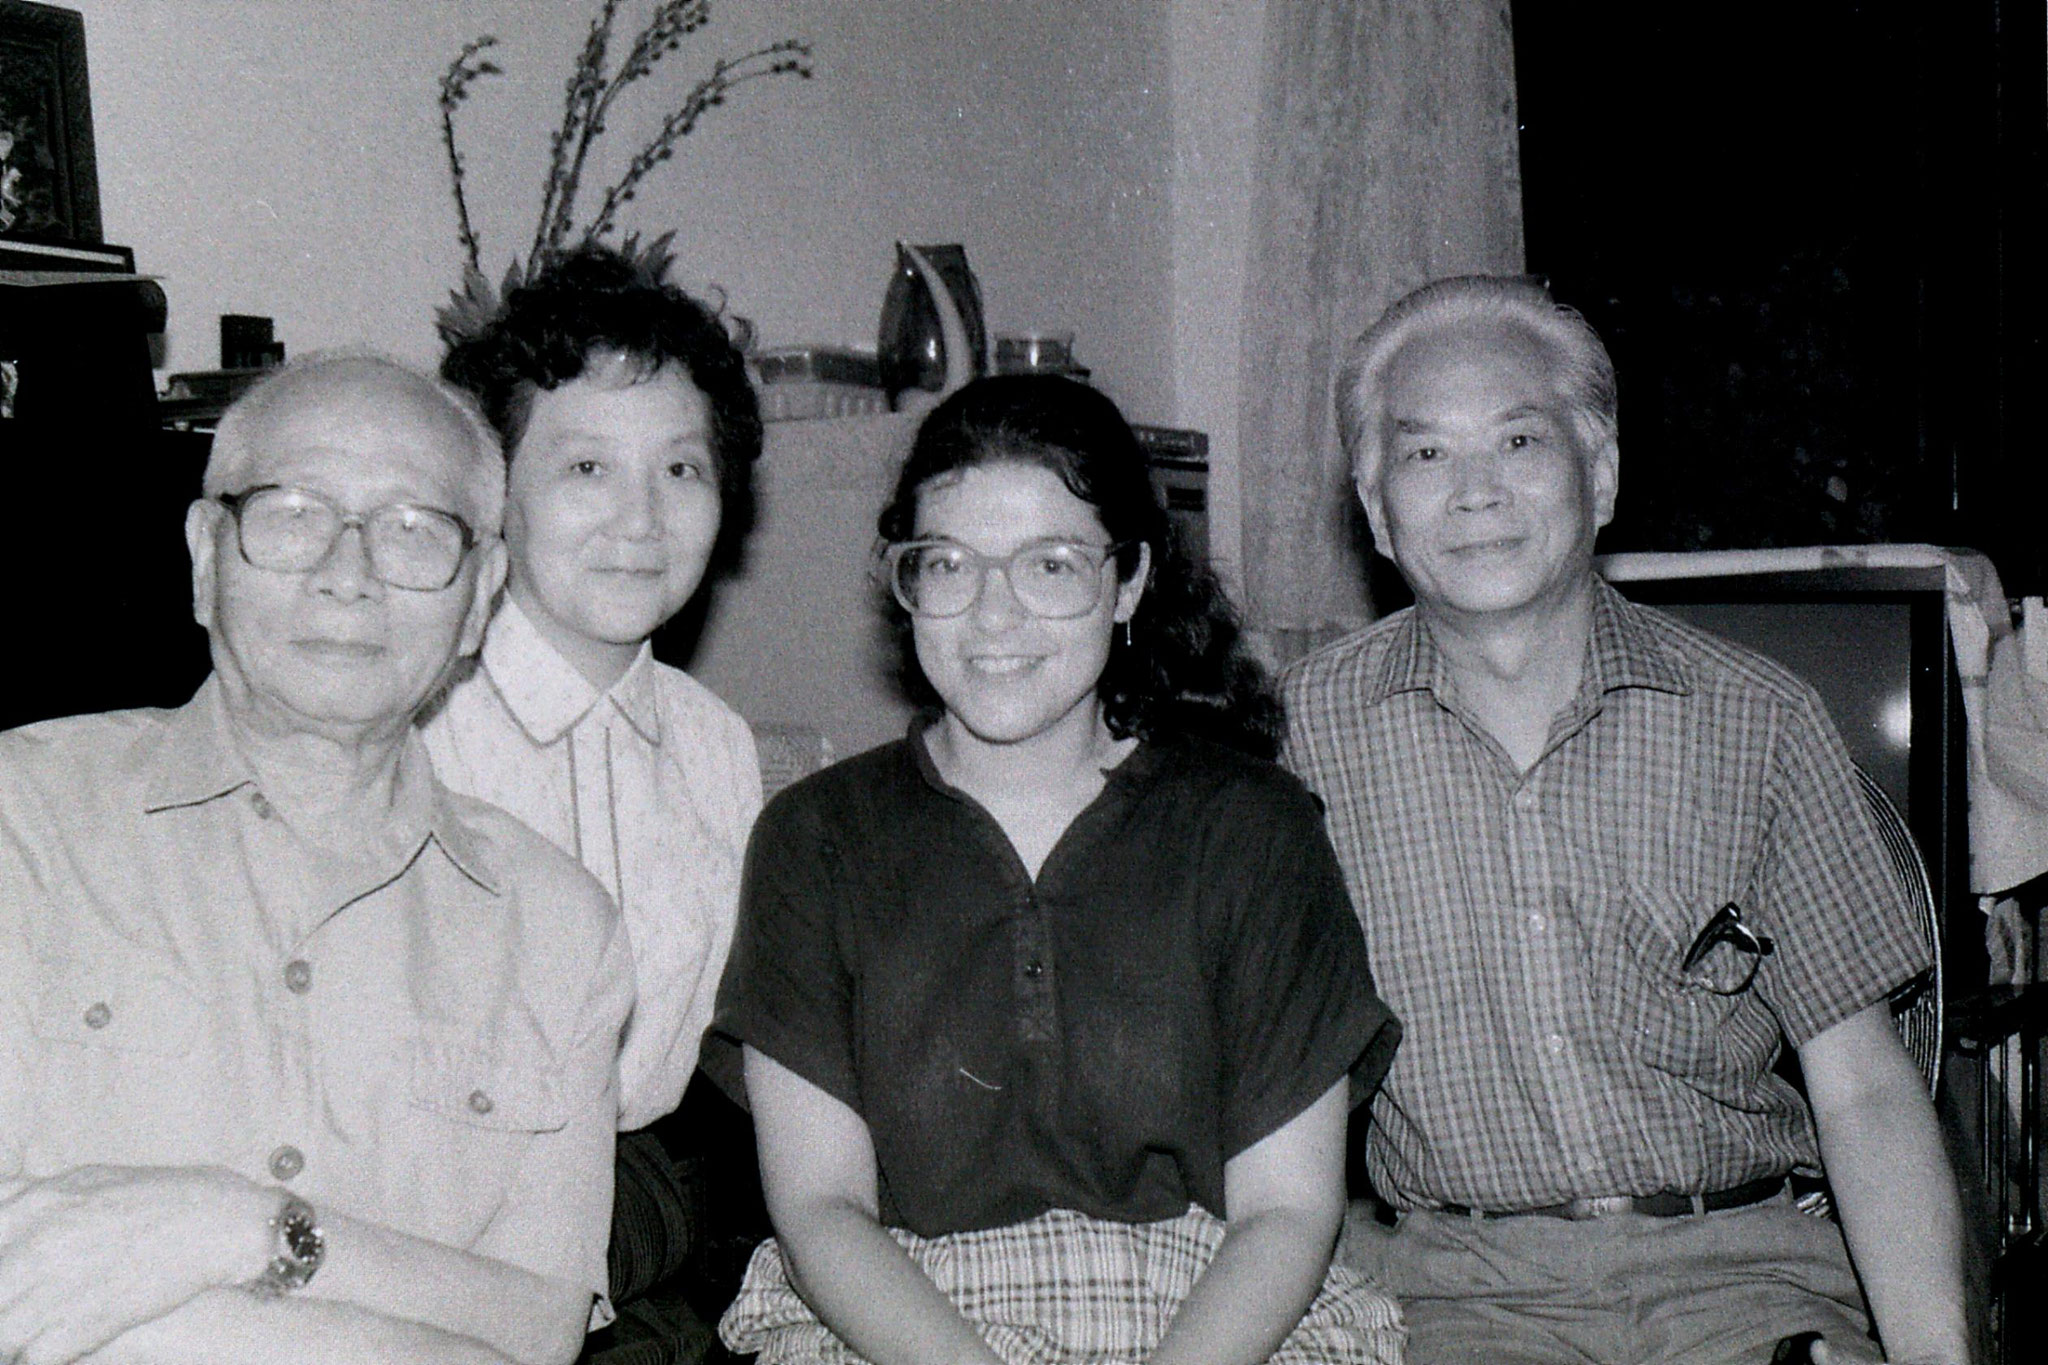 2/7/1989: 6: Shanghai, Lin family appartment, Betty, John, Robert, Rachel and Professor Ma